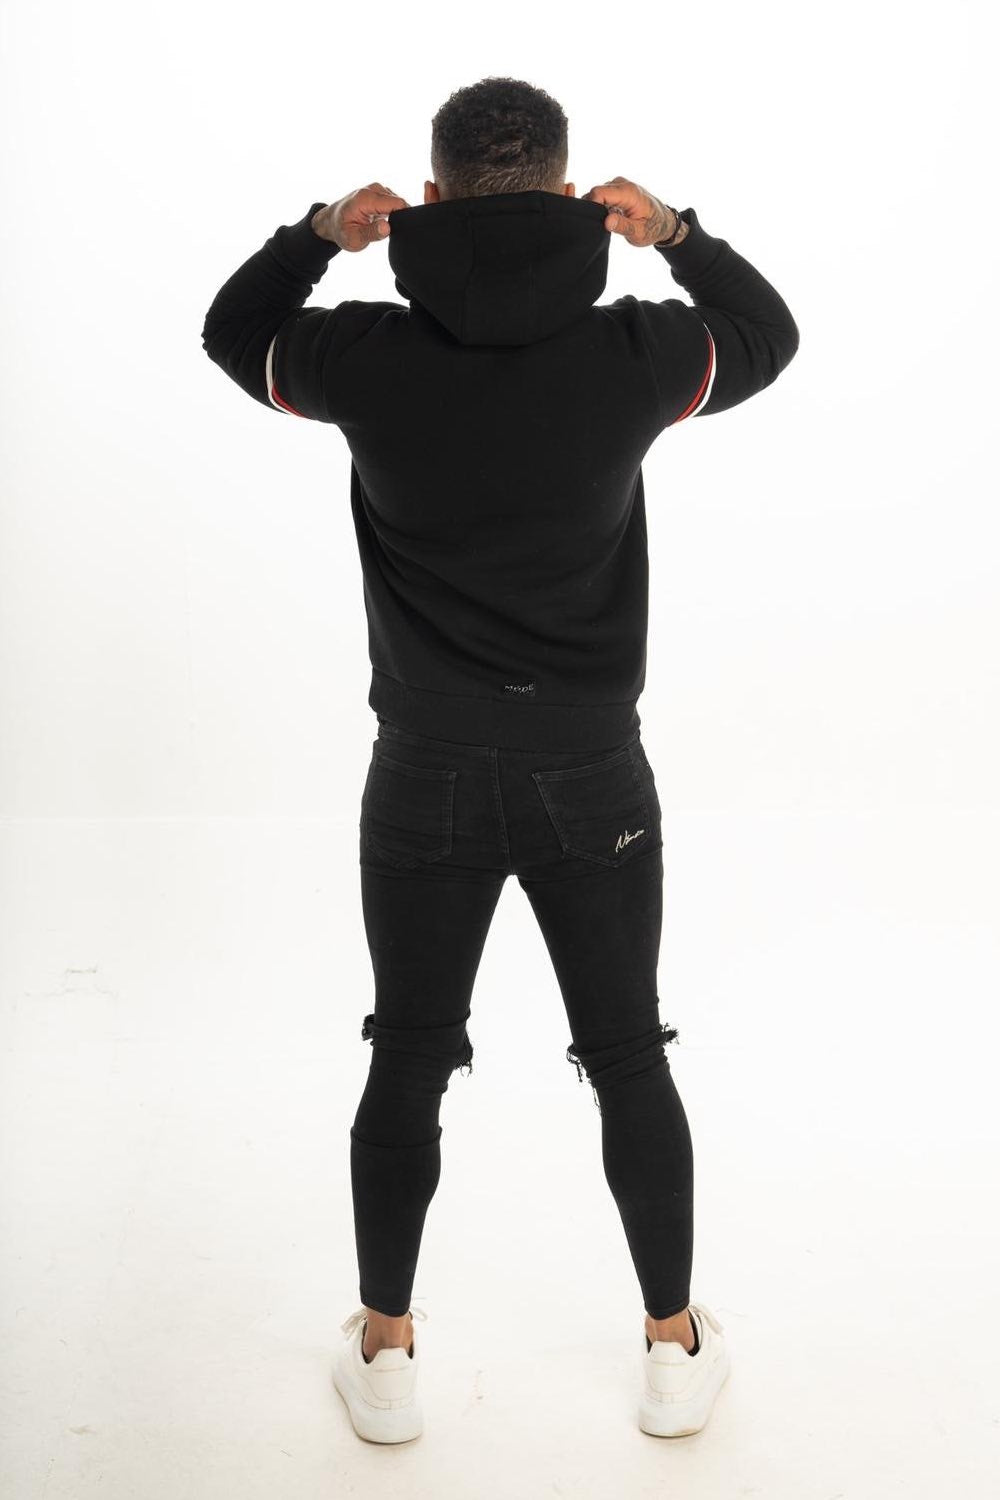 Mode London Mayfair Hoodie - Black - 3